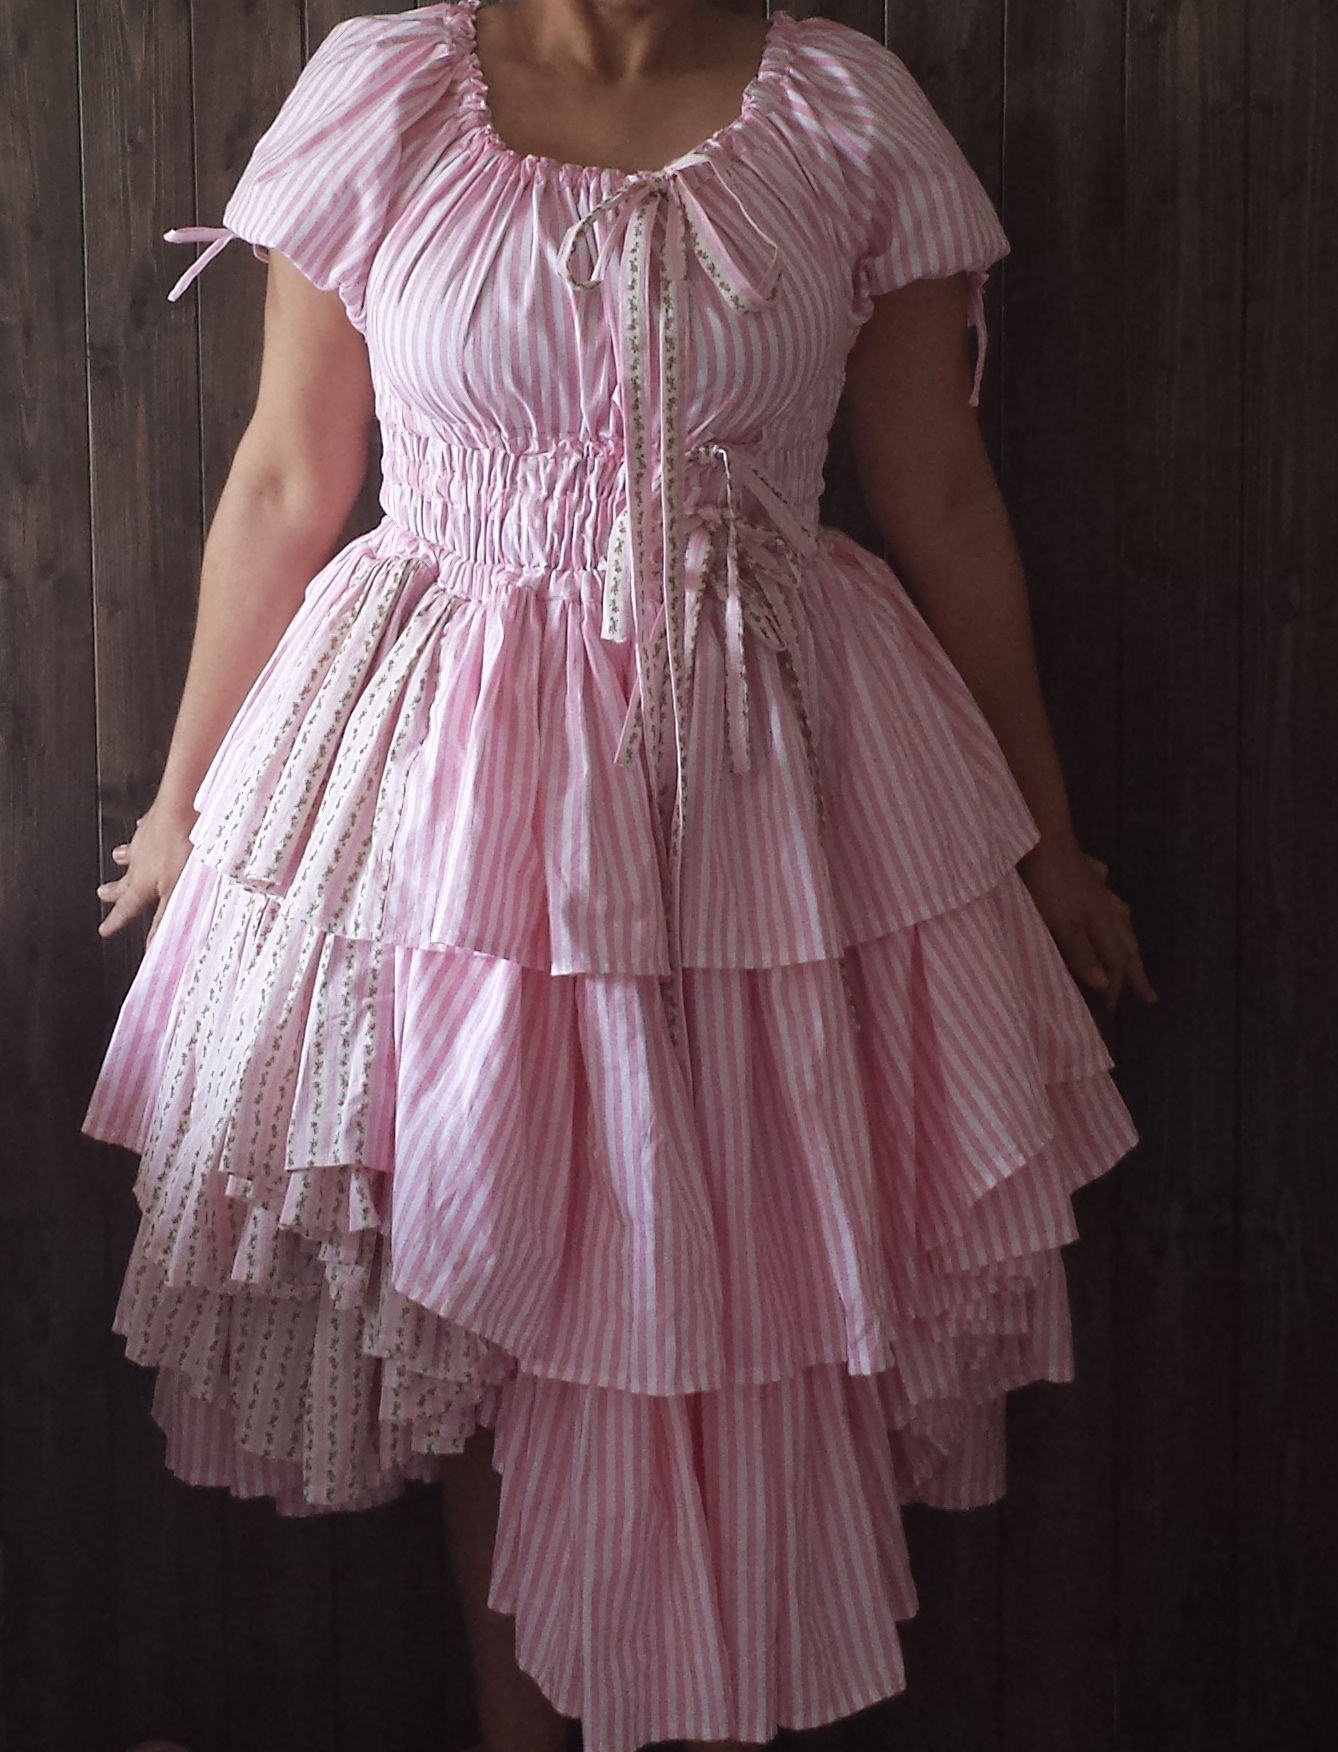 https://www.etsy.com/listing/219192744/pink-peasant-corset-wedding-dress?ref=shop_home_feat_4  Lovely Corset Style Pink Layered Wedding Dress